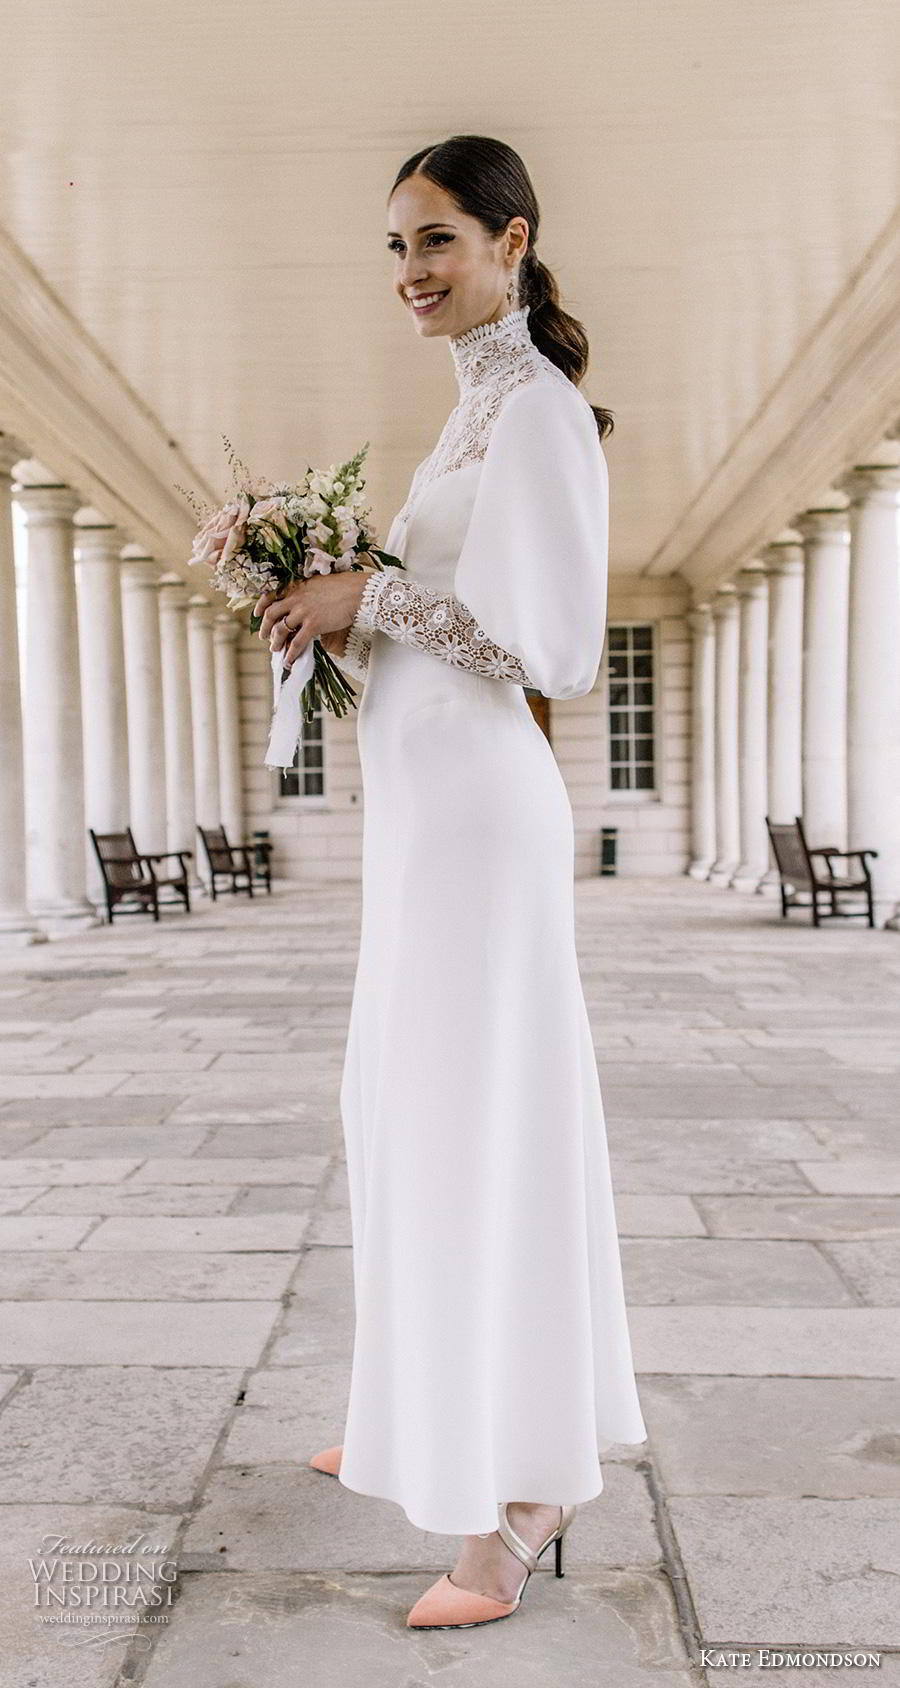 kate edmondson couture bridal long mutton leg sleeves high neck heavily embellished bodice simple casual ankle length modified a line wedding dress (3) sdv